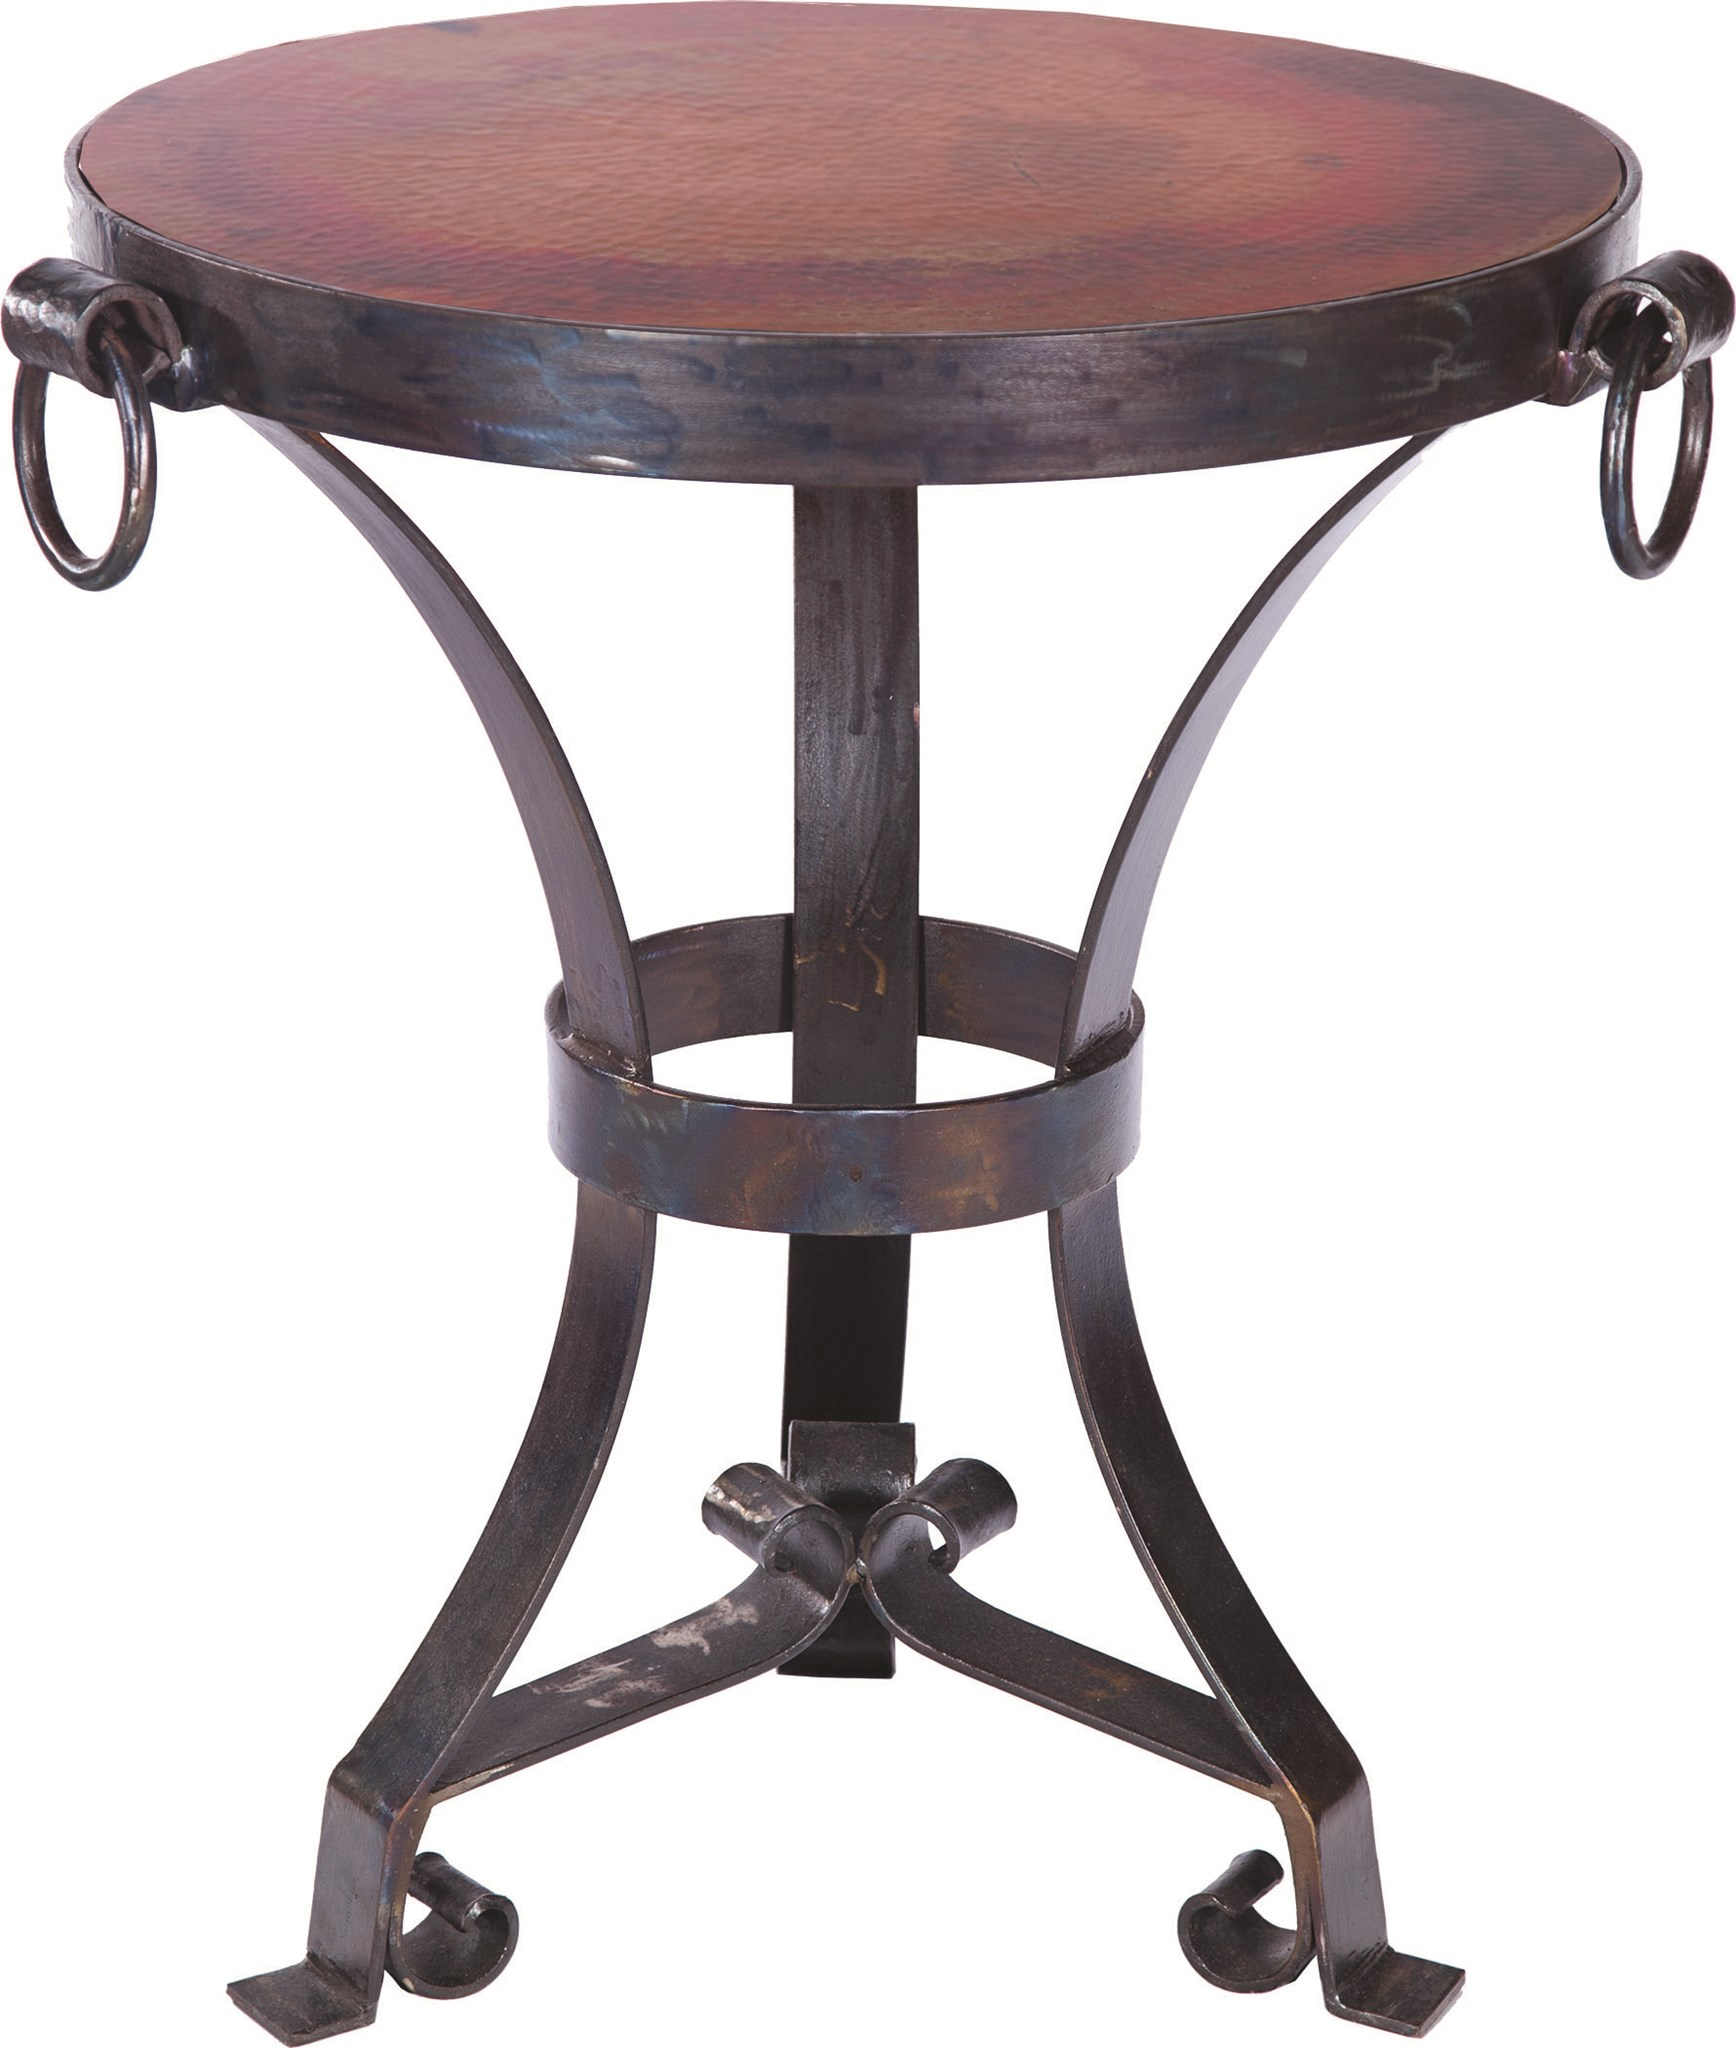 Accent Table With Hardware Rings And Round Hammered Copper Top - Copper top accent table